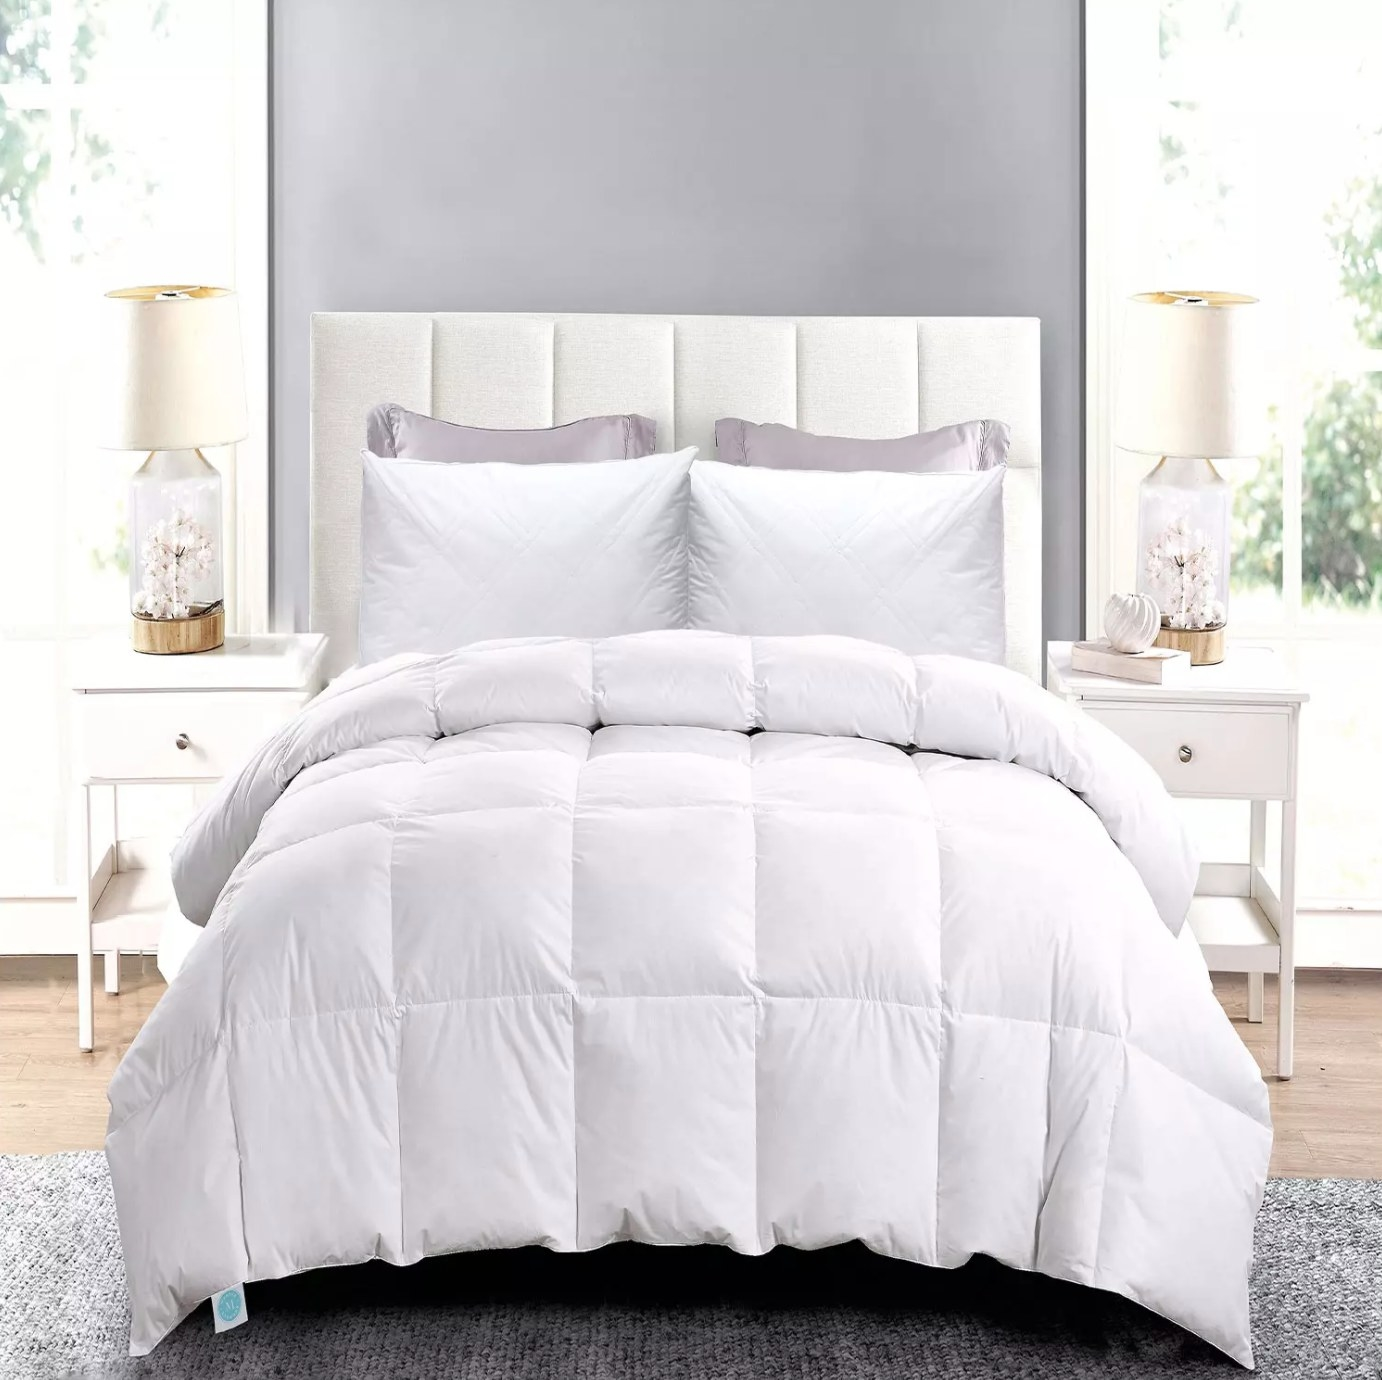 The down comforter and pillow set in twin size